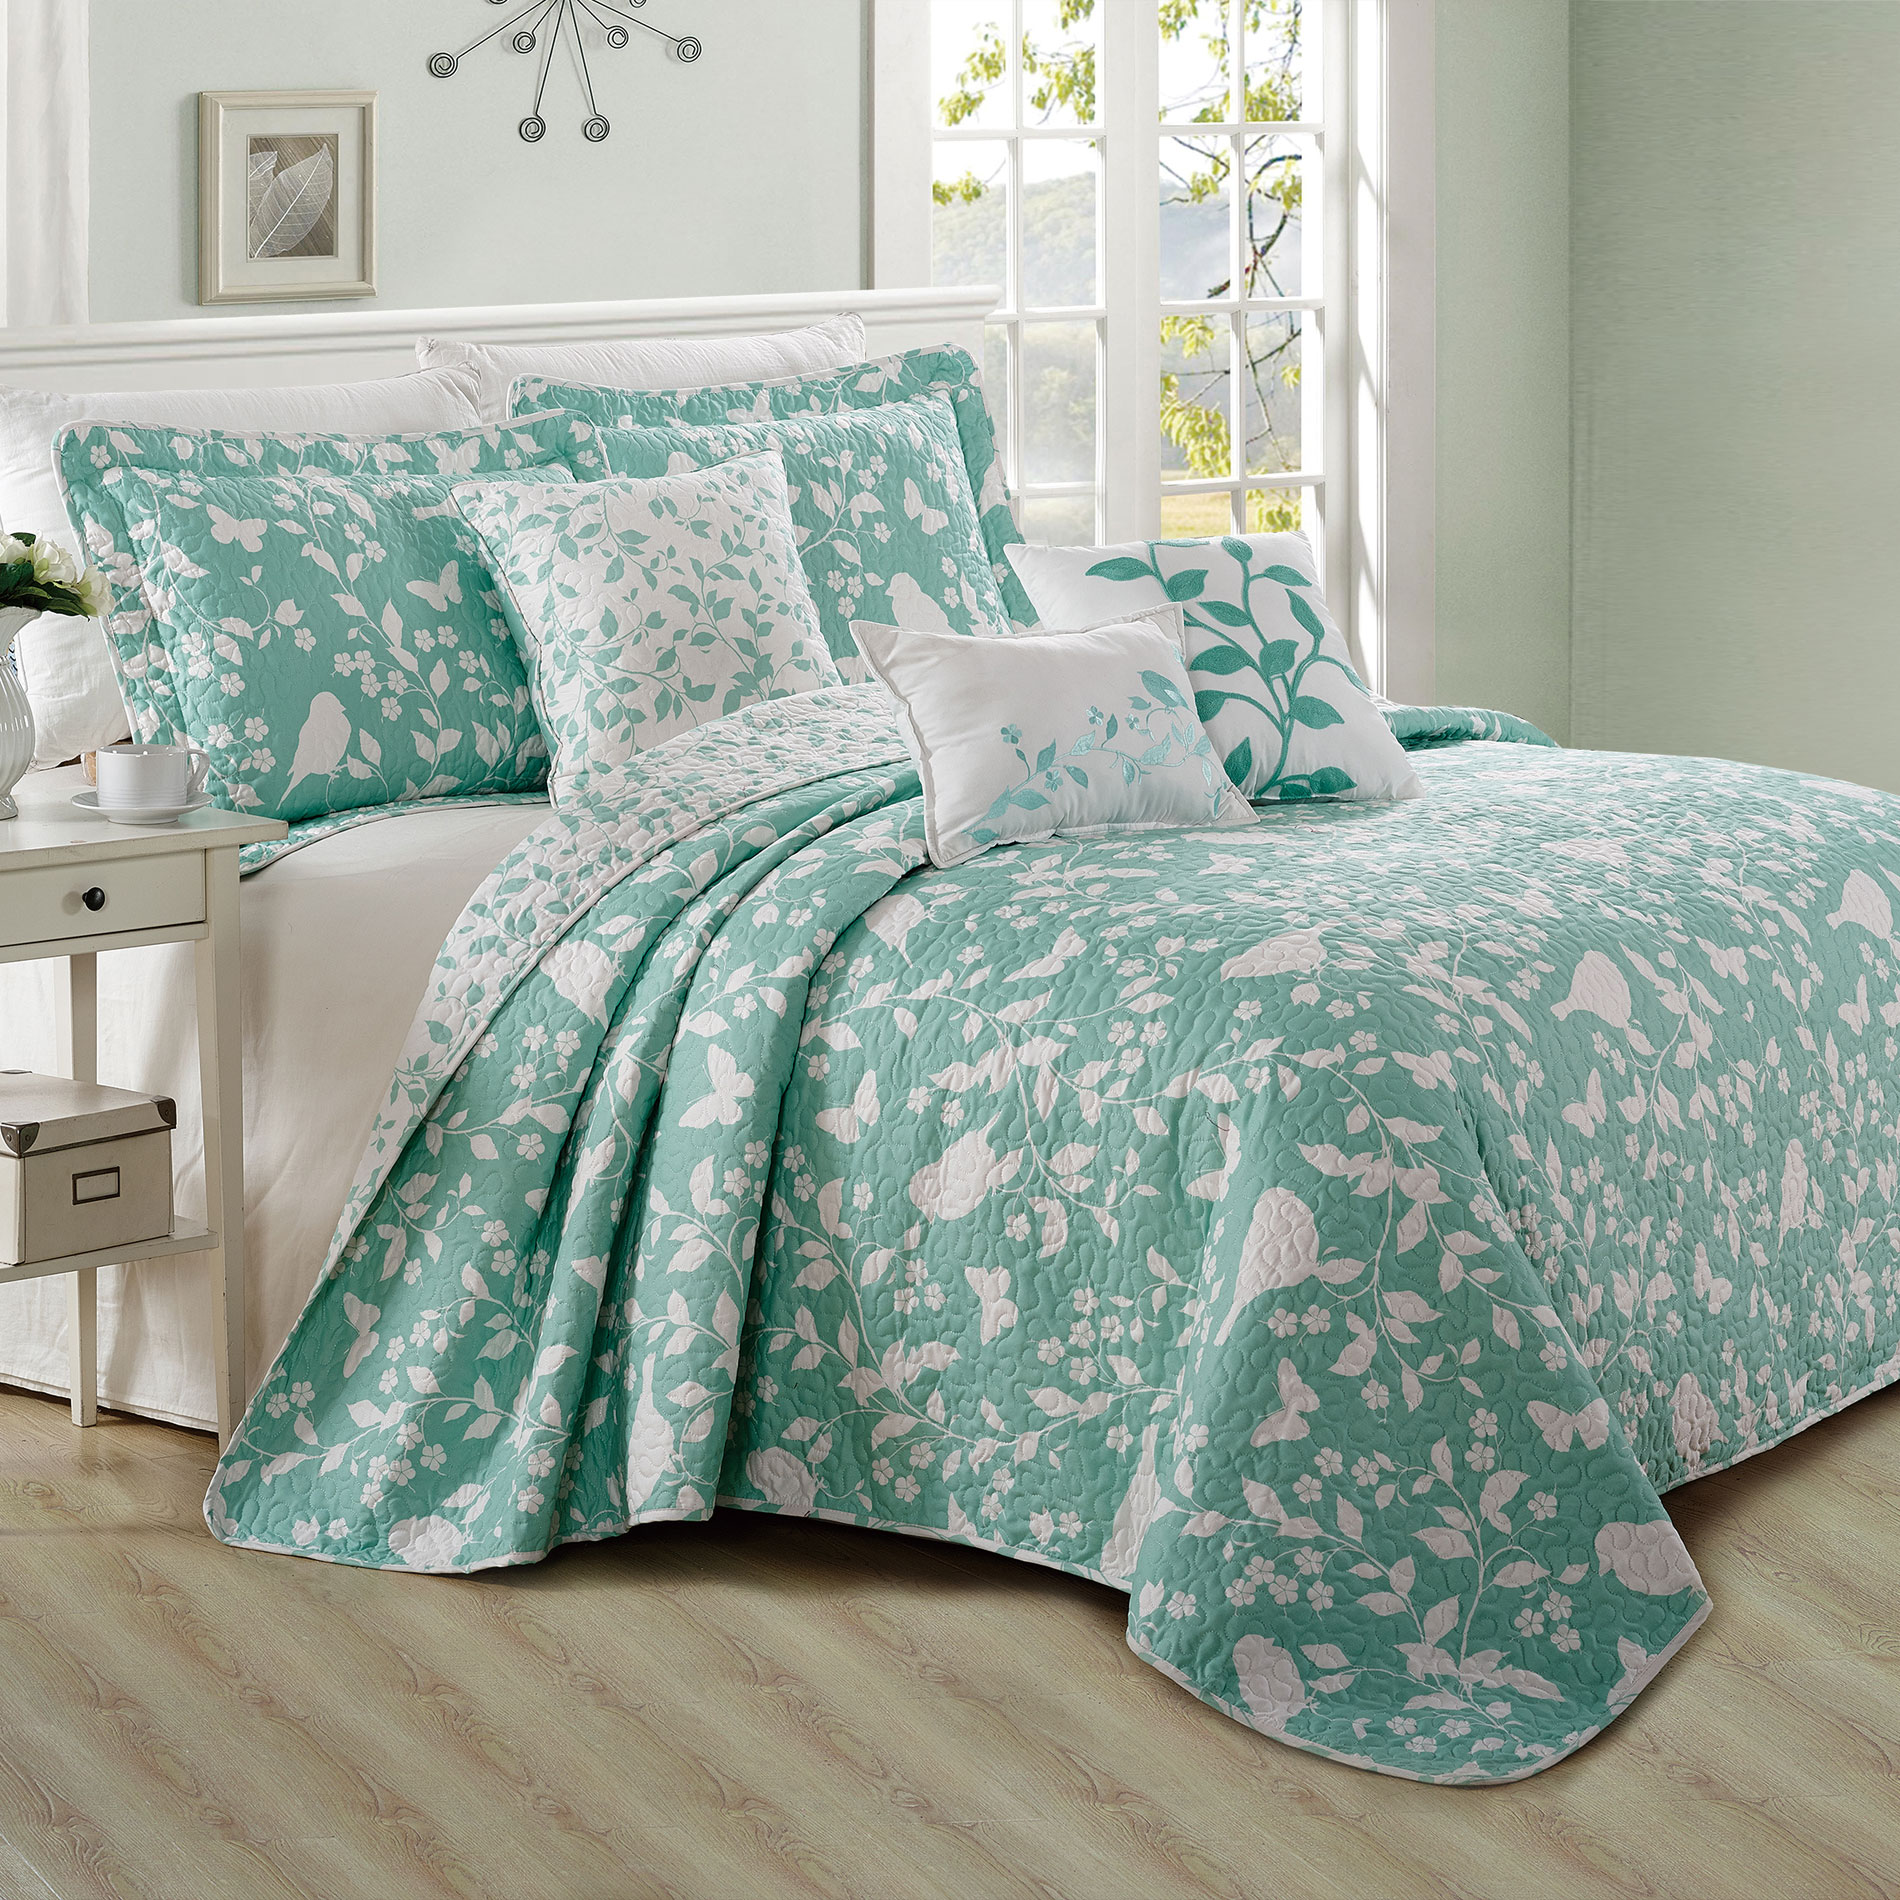 Serenta Birdsong 6 Piece Bed Spread Set